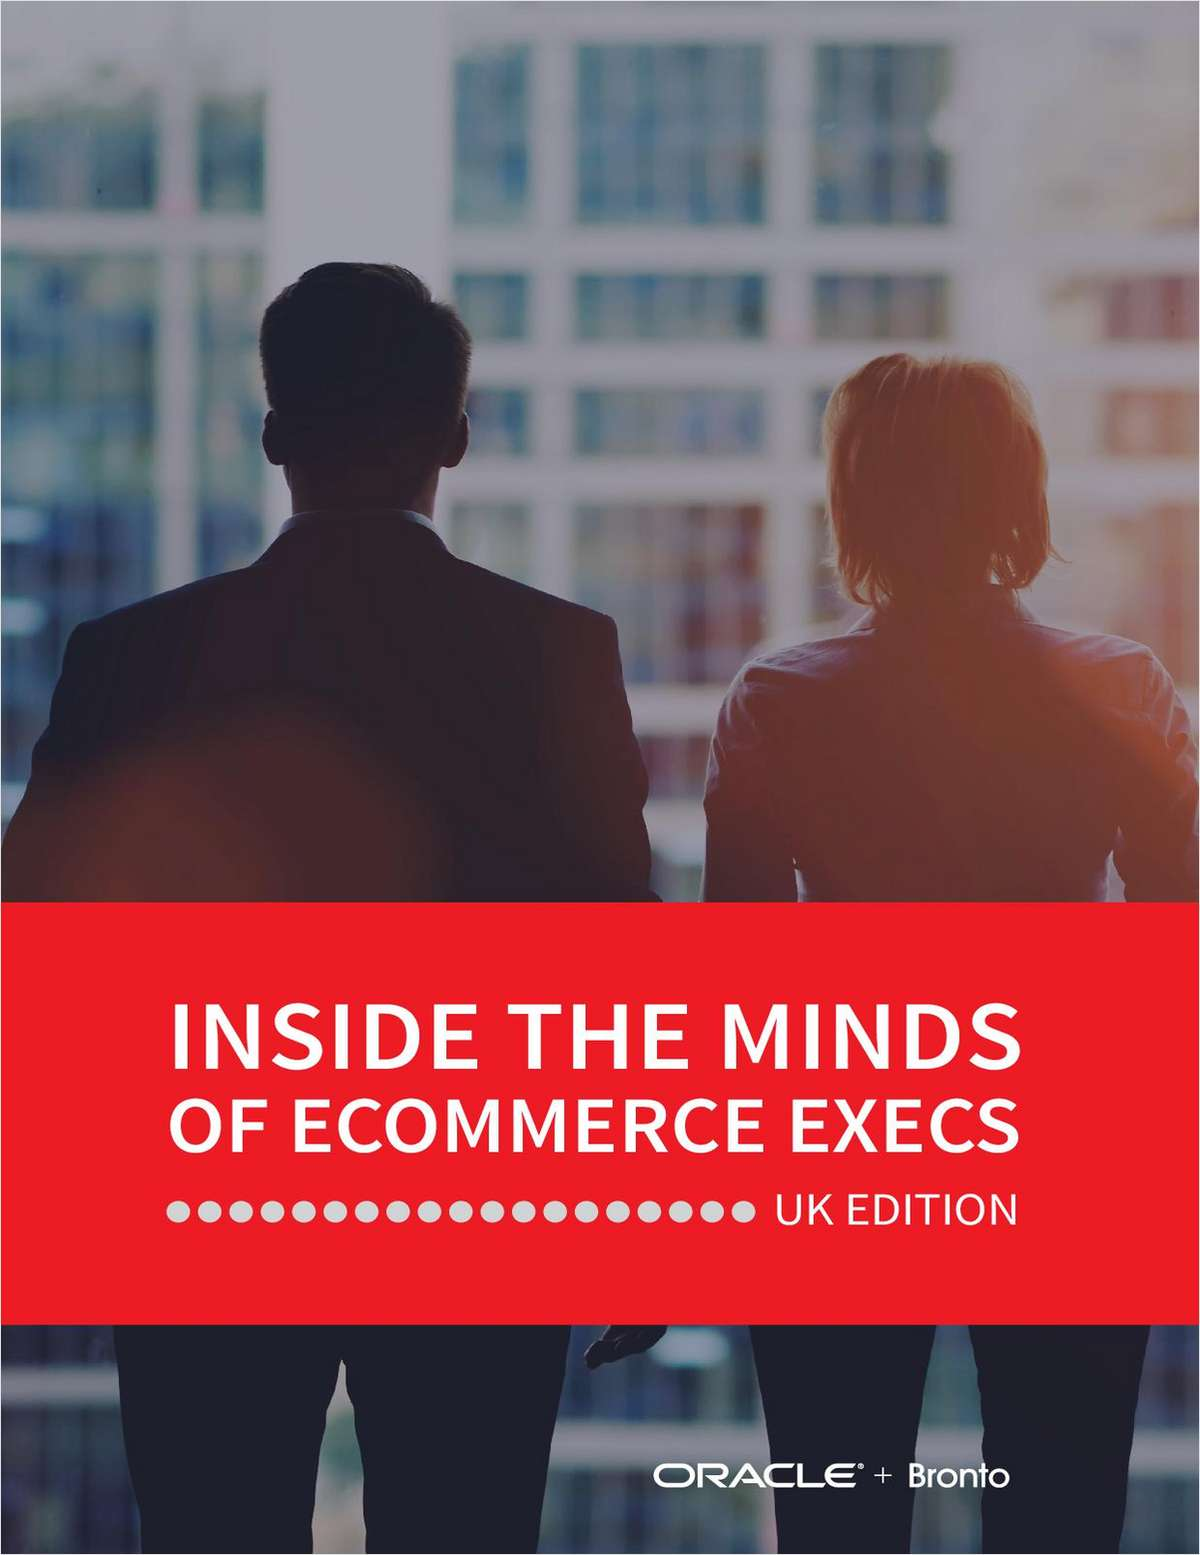 Inside the Minds of UK Ecommerce Execs